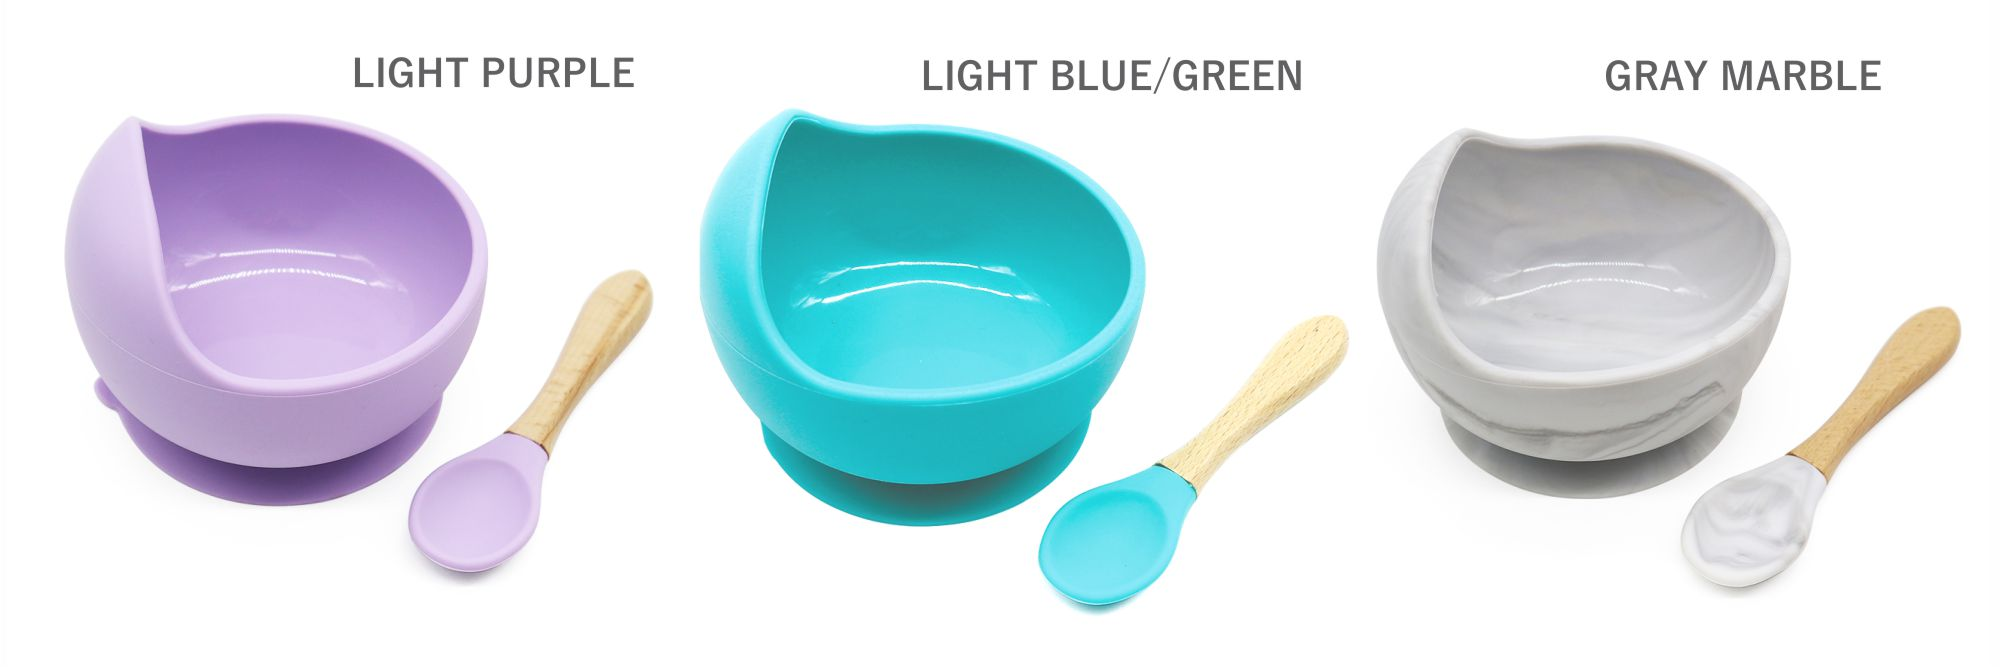 Magic Stay-put Baby Bowl & Spoon Set in Brilliant Gray